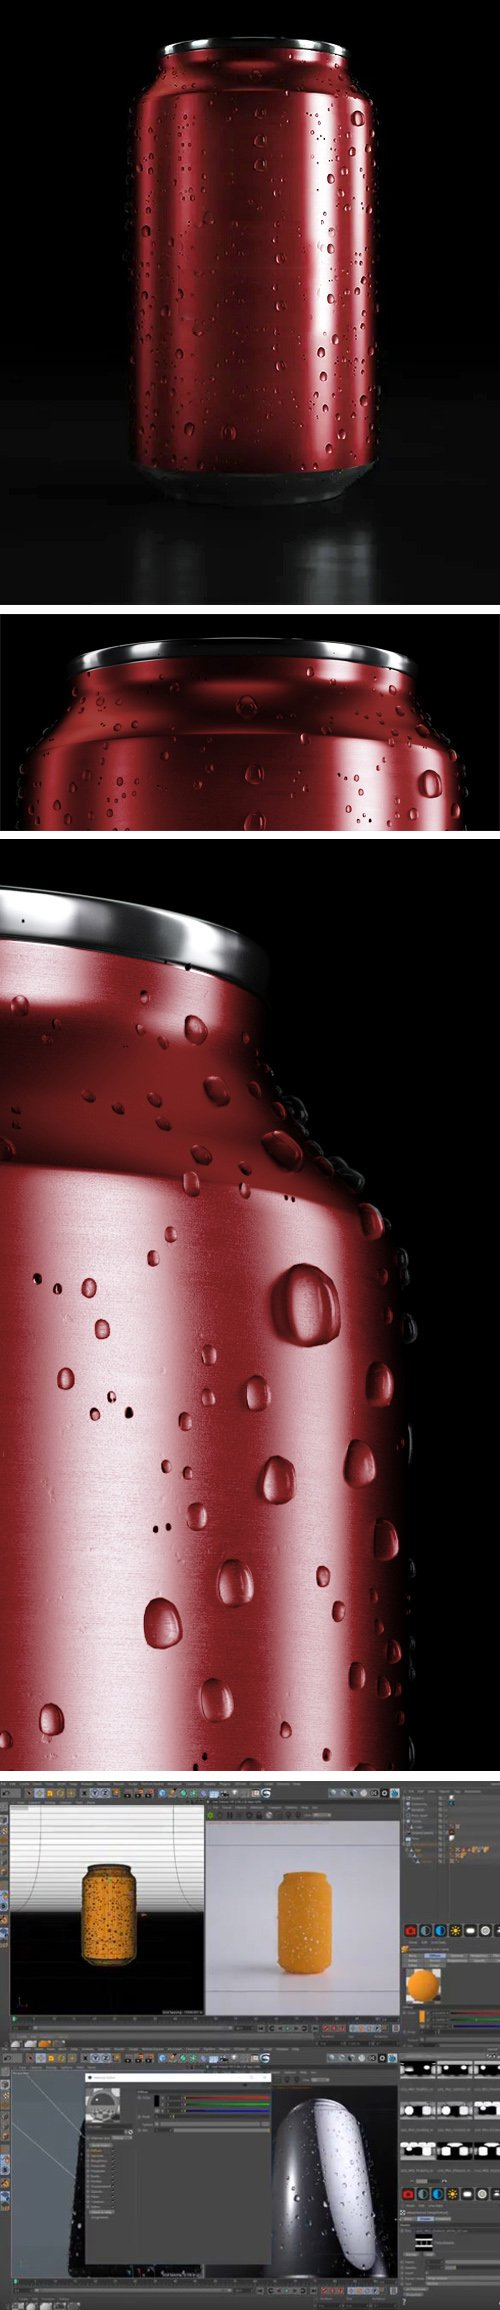 Red Soda Can PSD Mockup in 5K - Made with Cinema 4D !